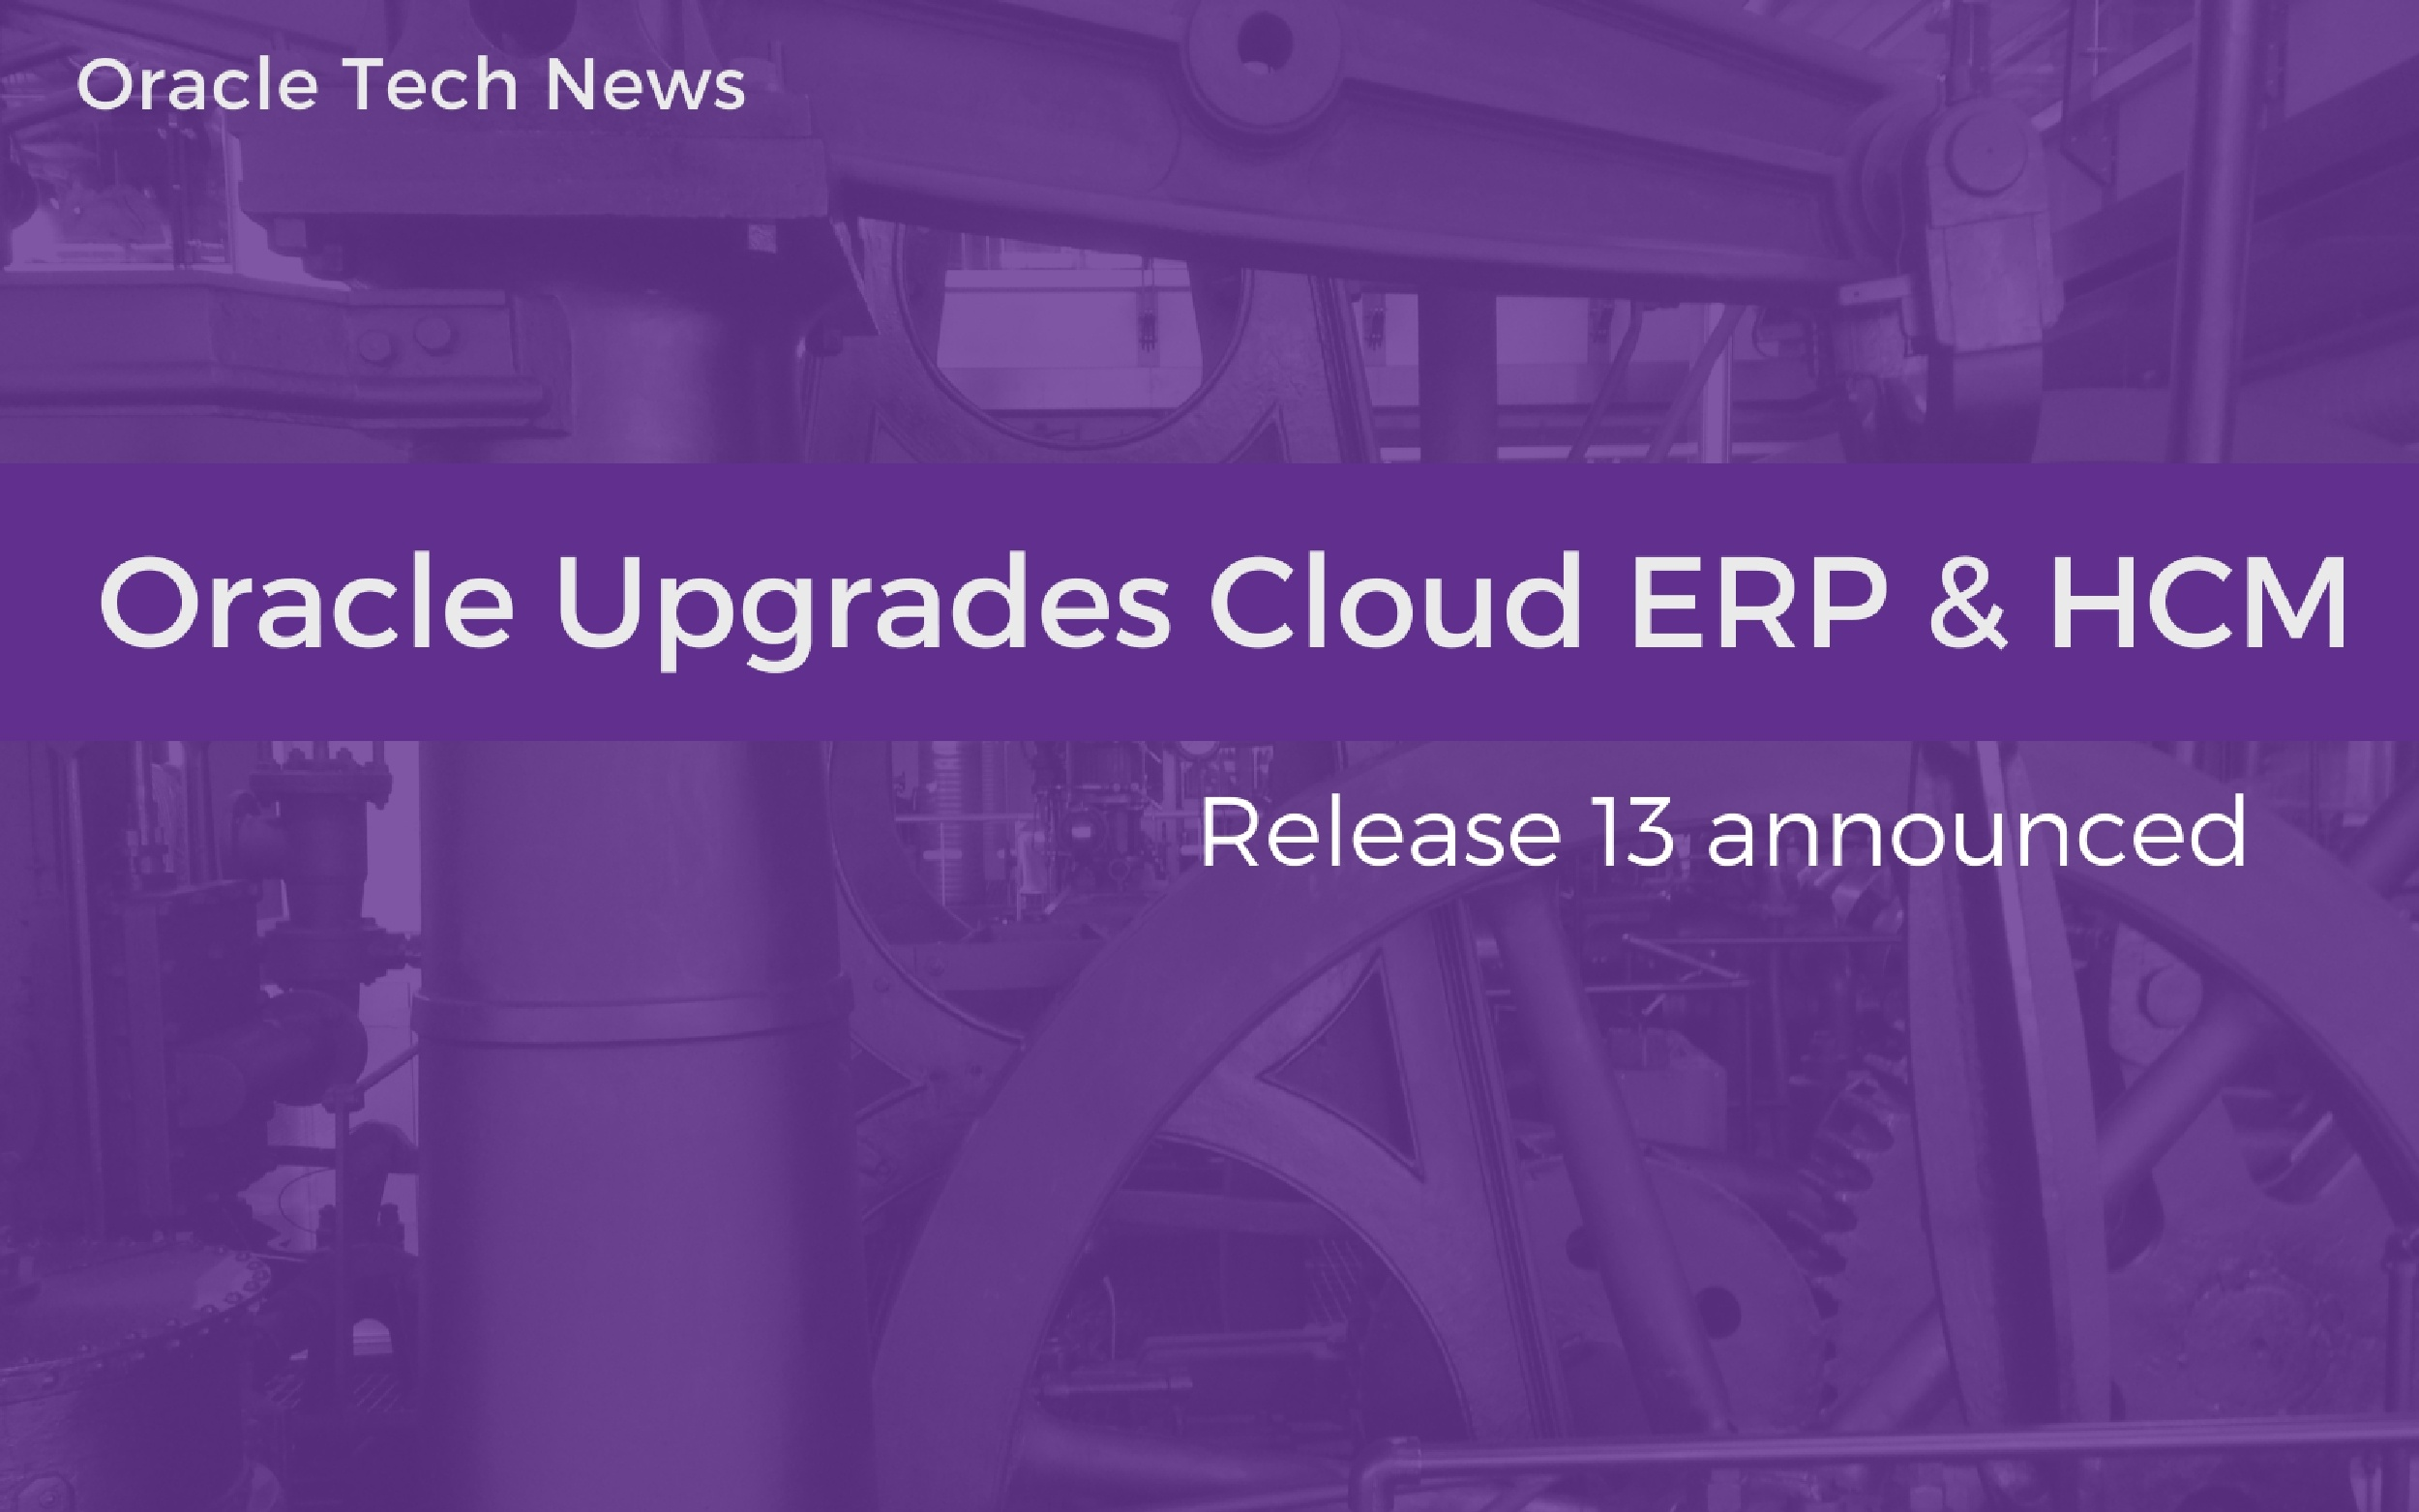 Oracle upgrades HCM ERP